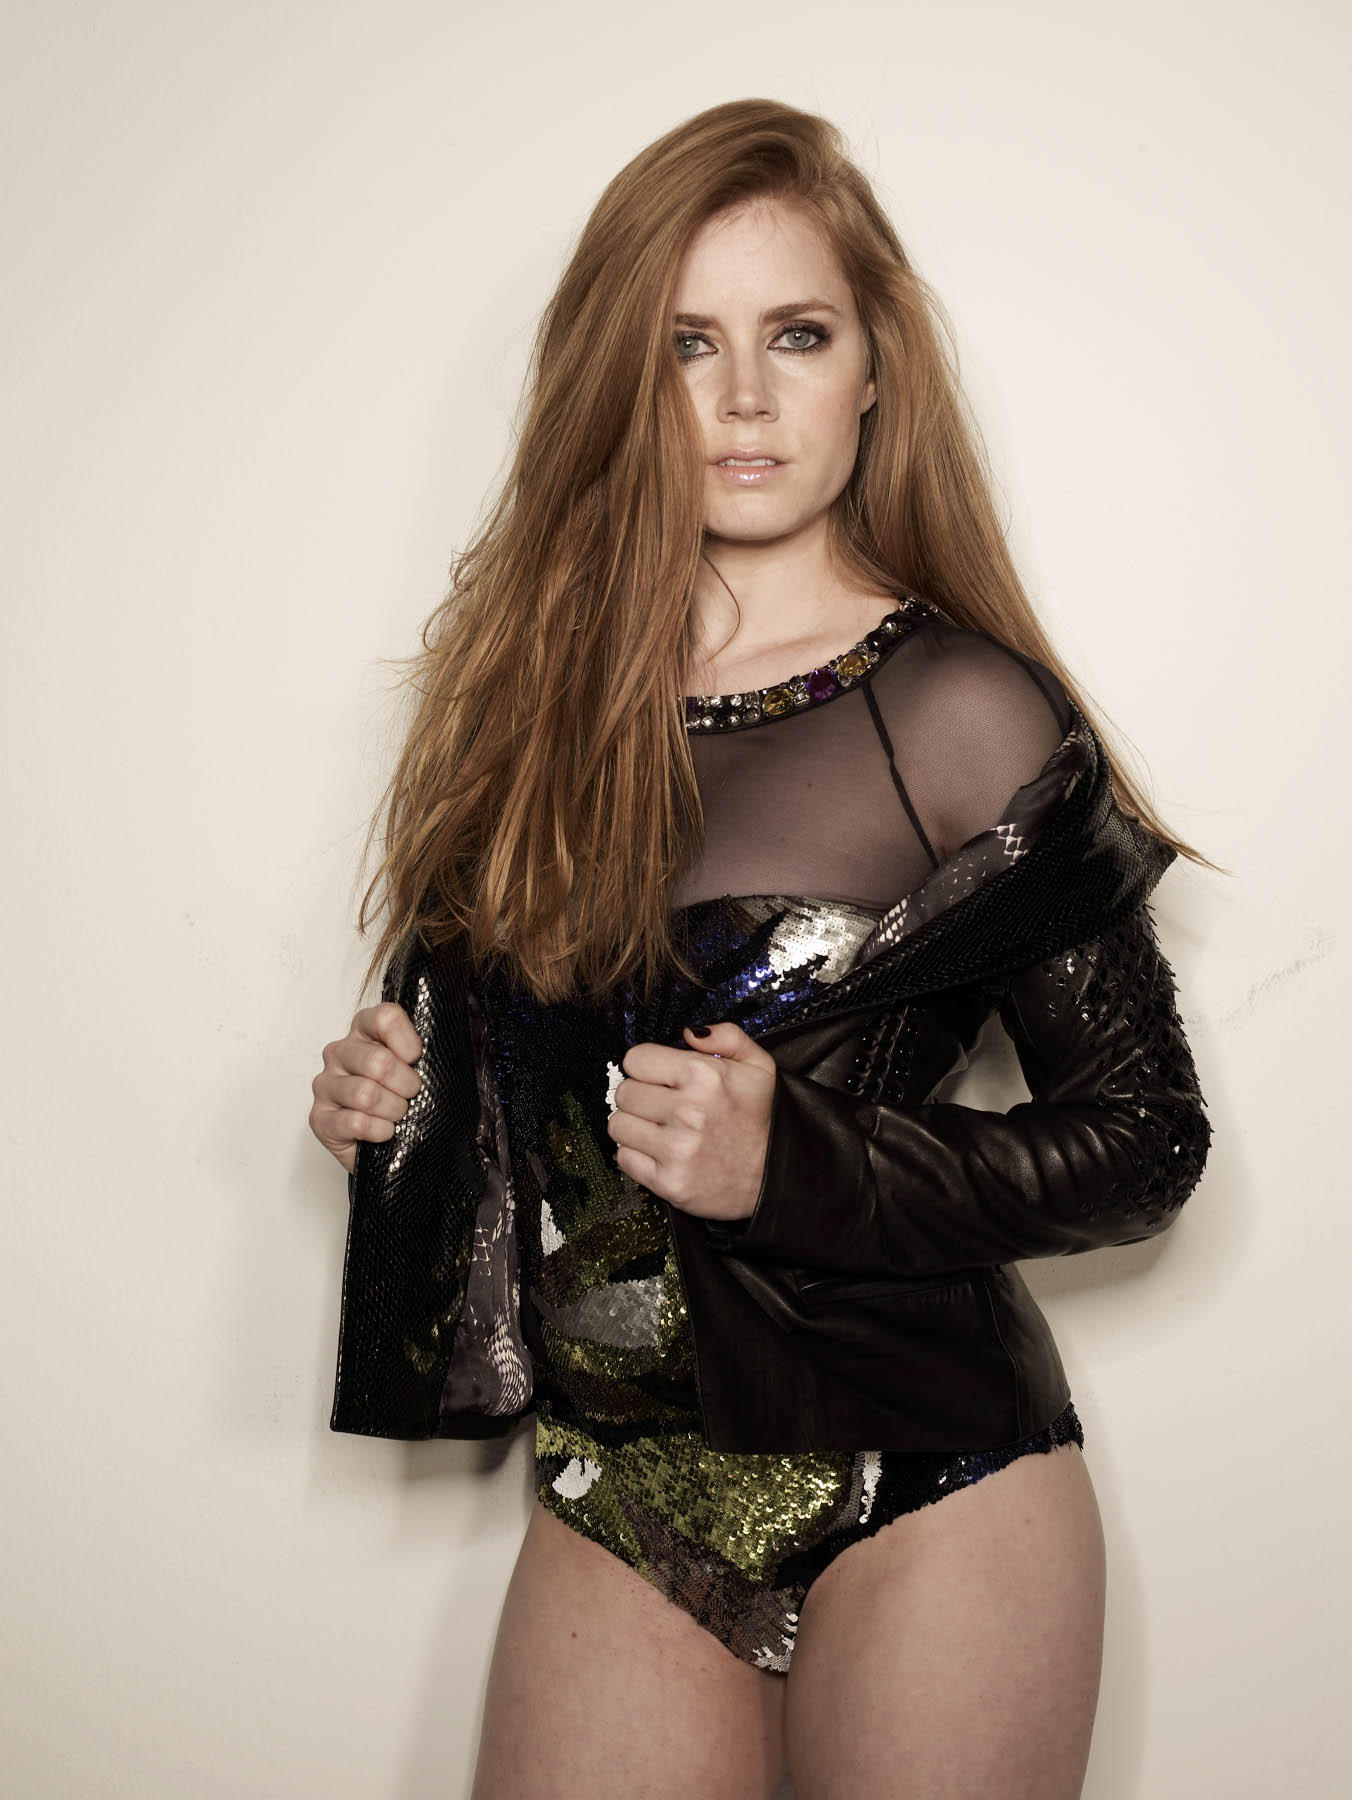 Amy Adams Hot Posing in Sexy Outfit